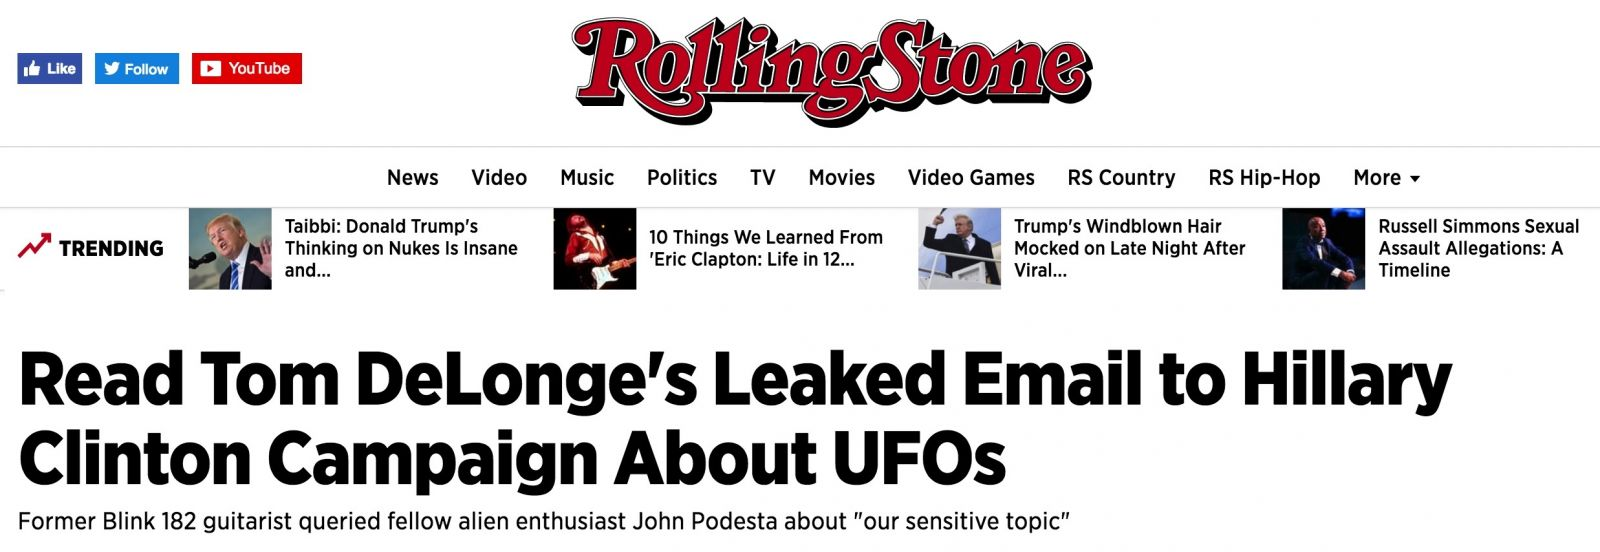 Tom DeLonge Group Stunningly Debunked: Curtains for Partial ...